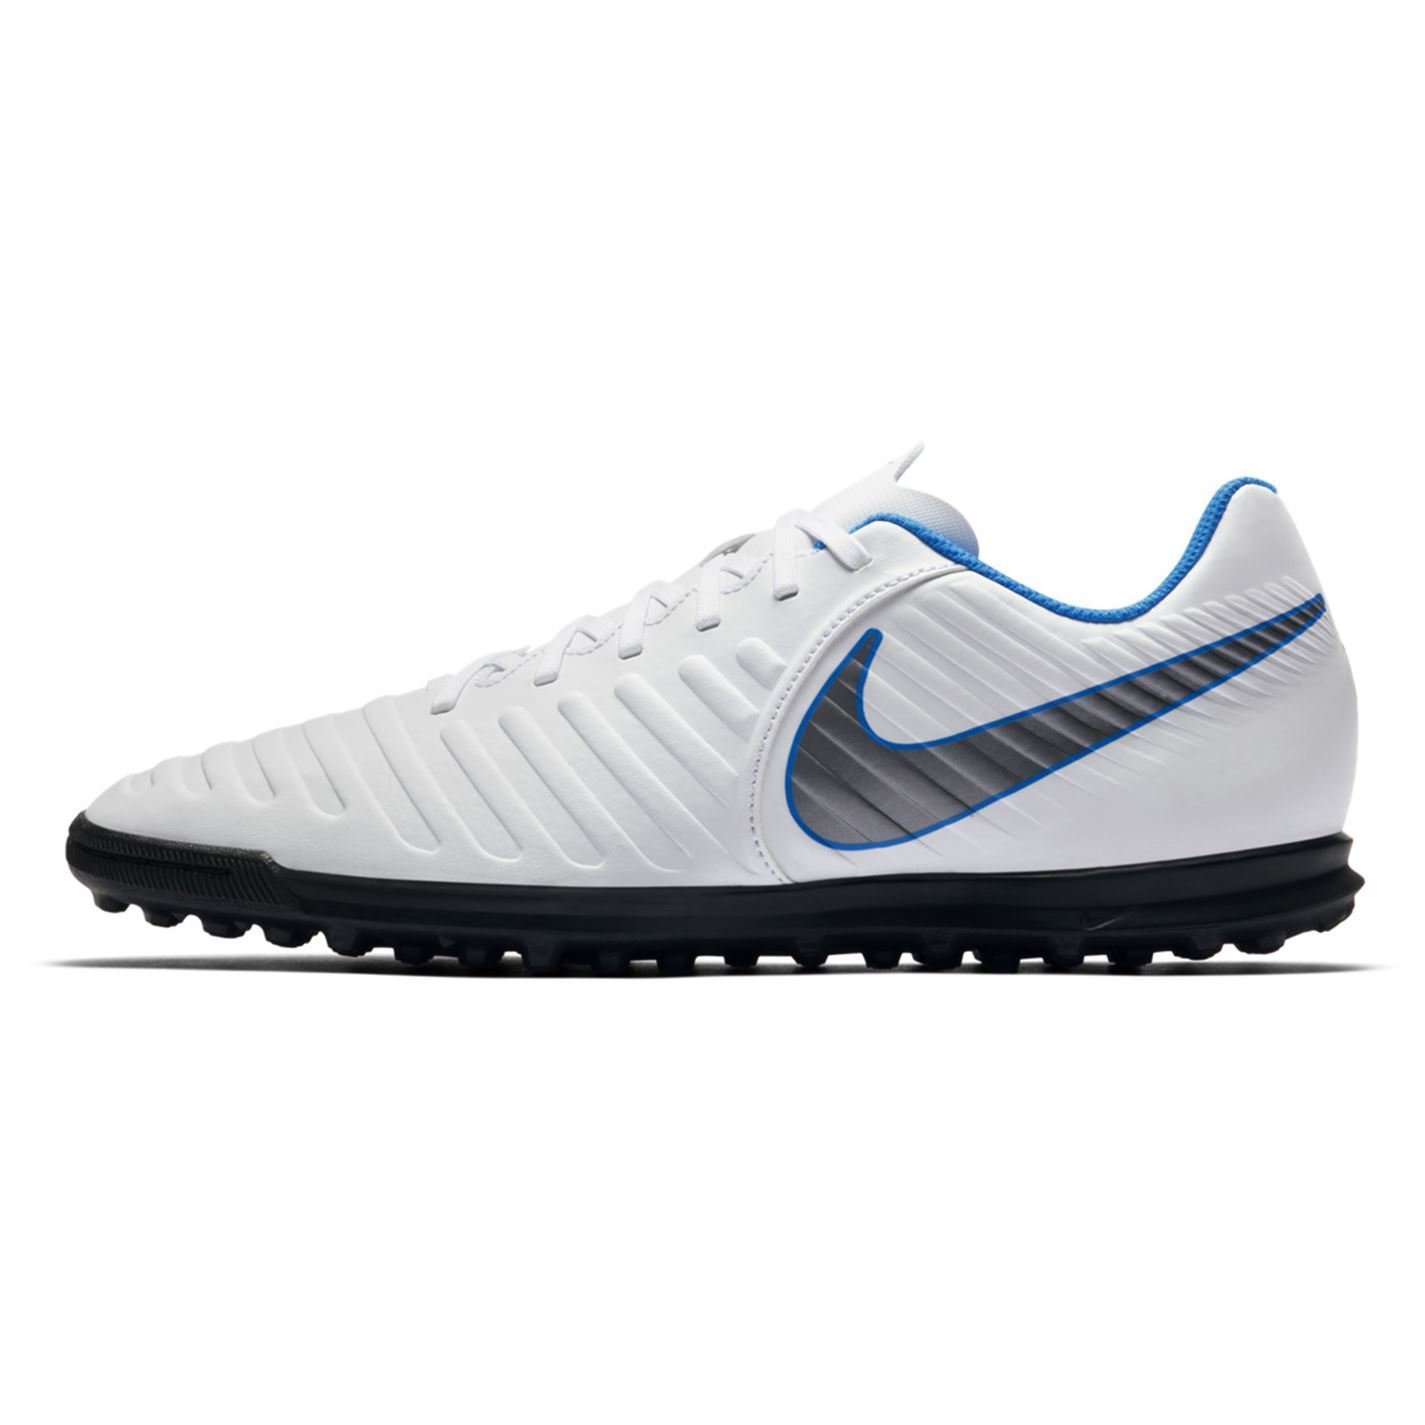 9e30e070da1 ... Nike Tiempo Legend Club Astro Turf Football Trainers Mens White Blue  Soccer Shoe ...